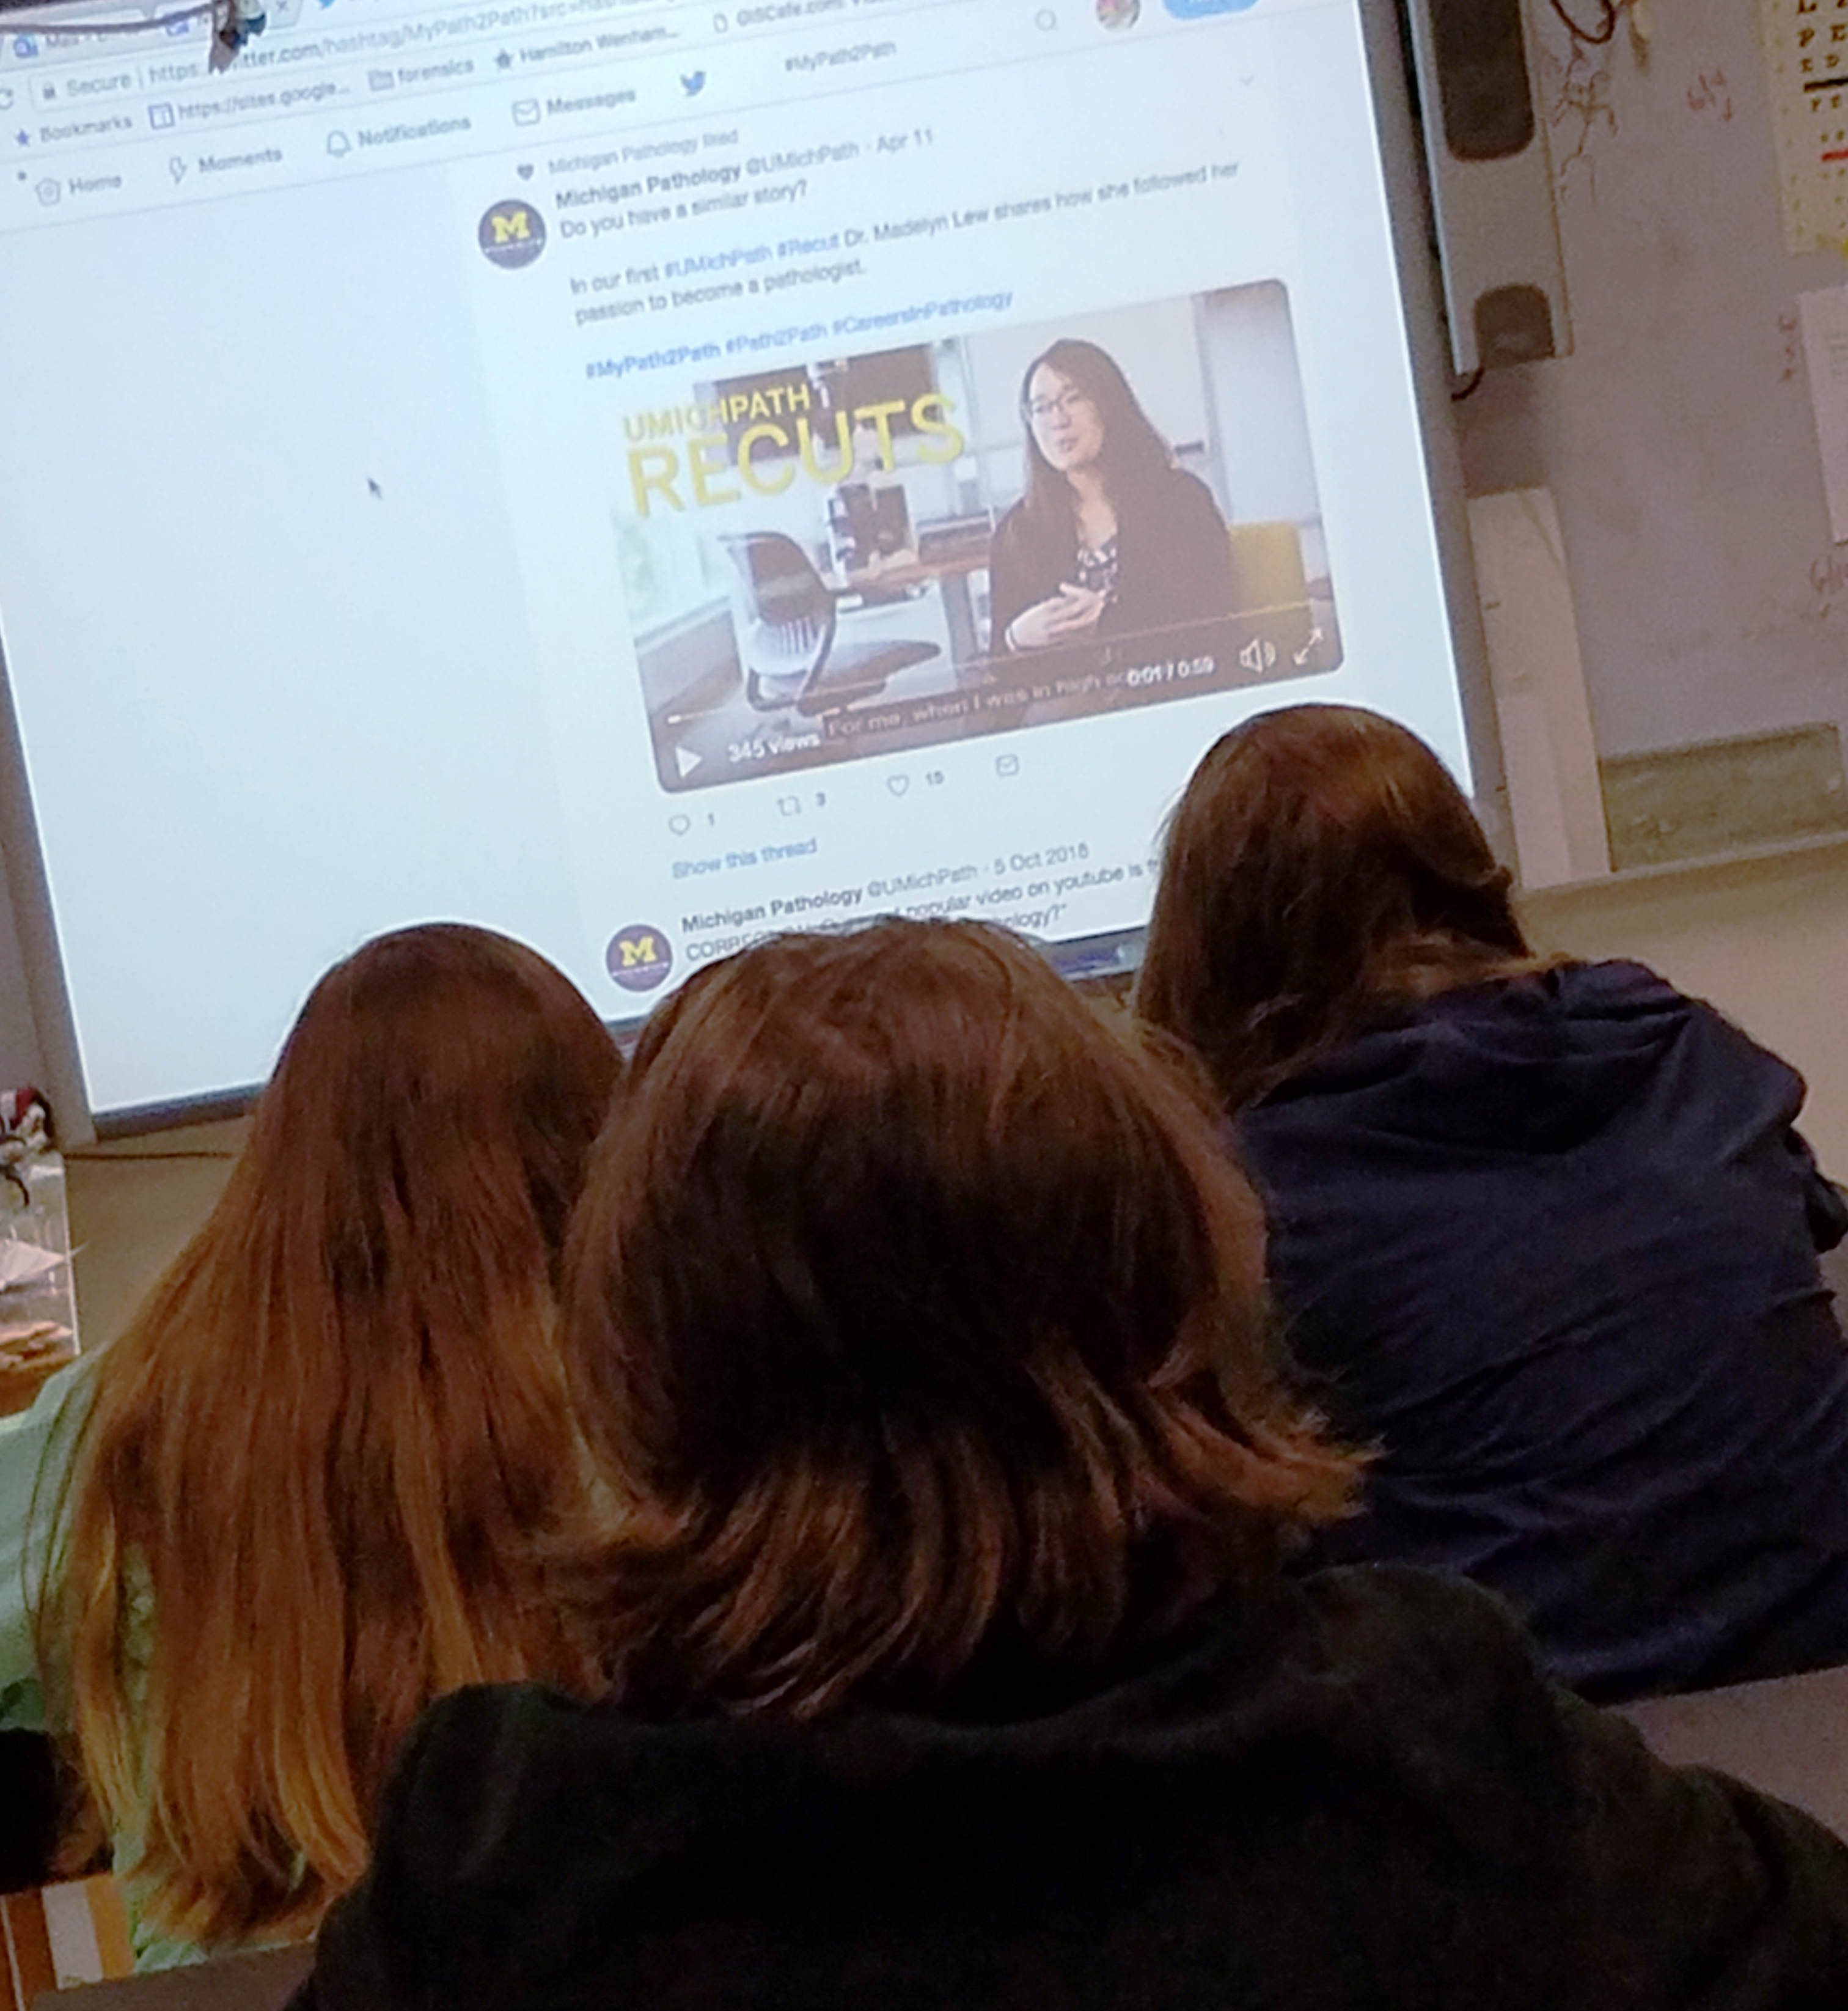 Deb Clapp's classroom watching Dr. Lew's #MyPath2Path